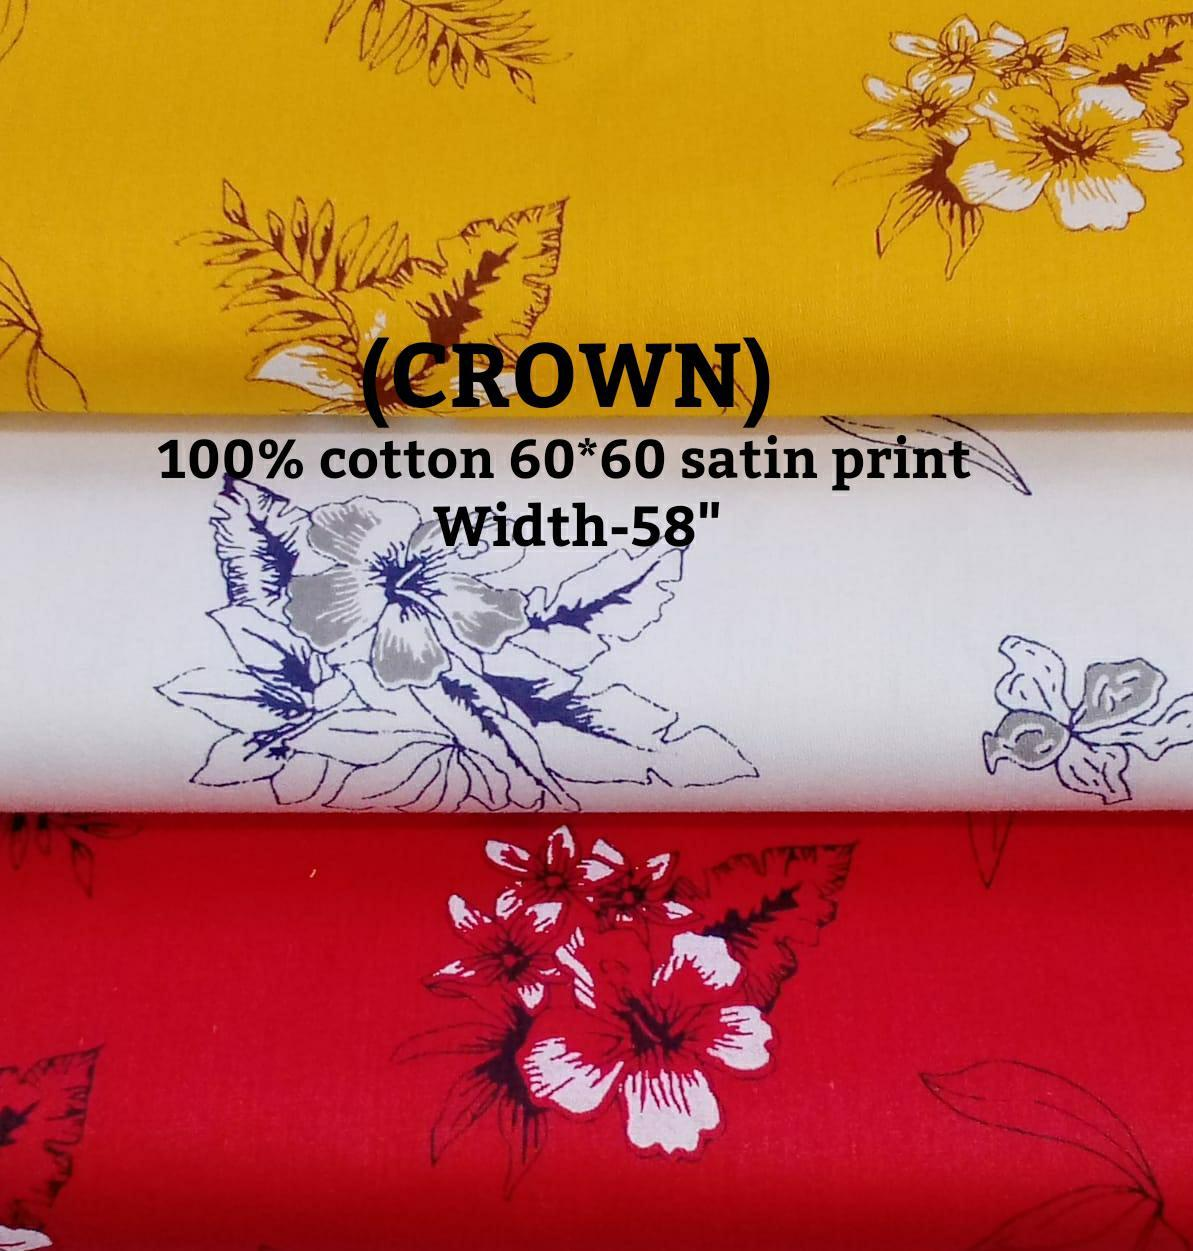 Crown (100% cotton 60*60 satin print)